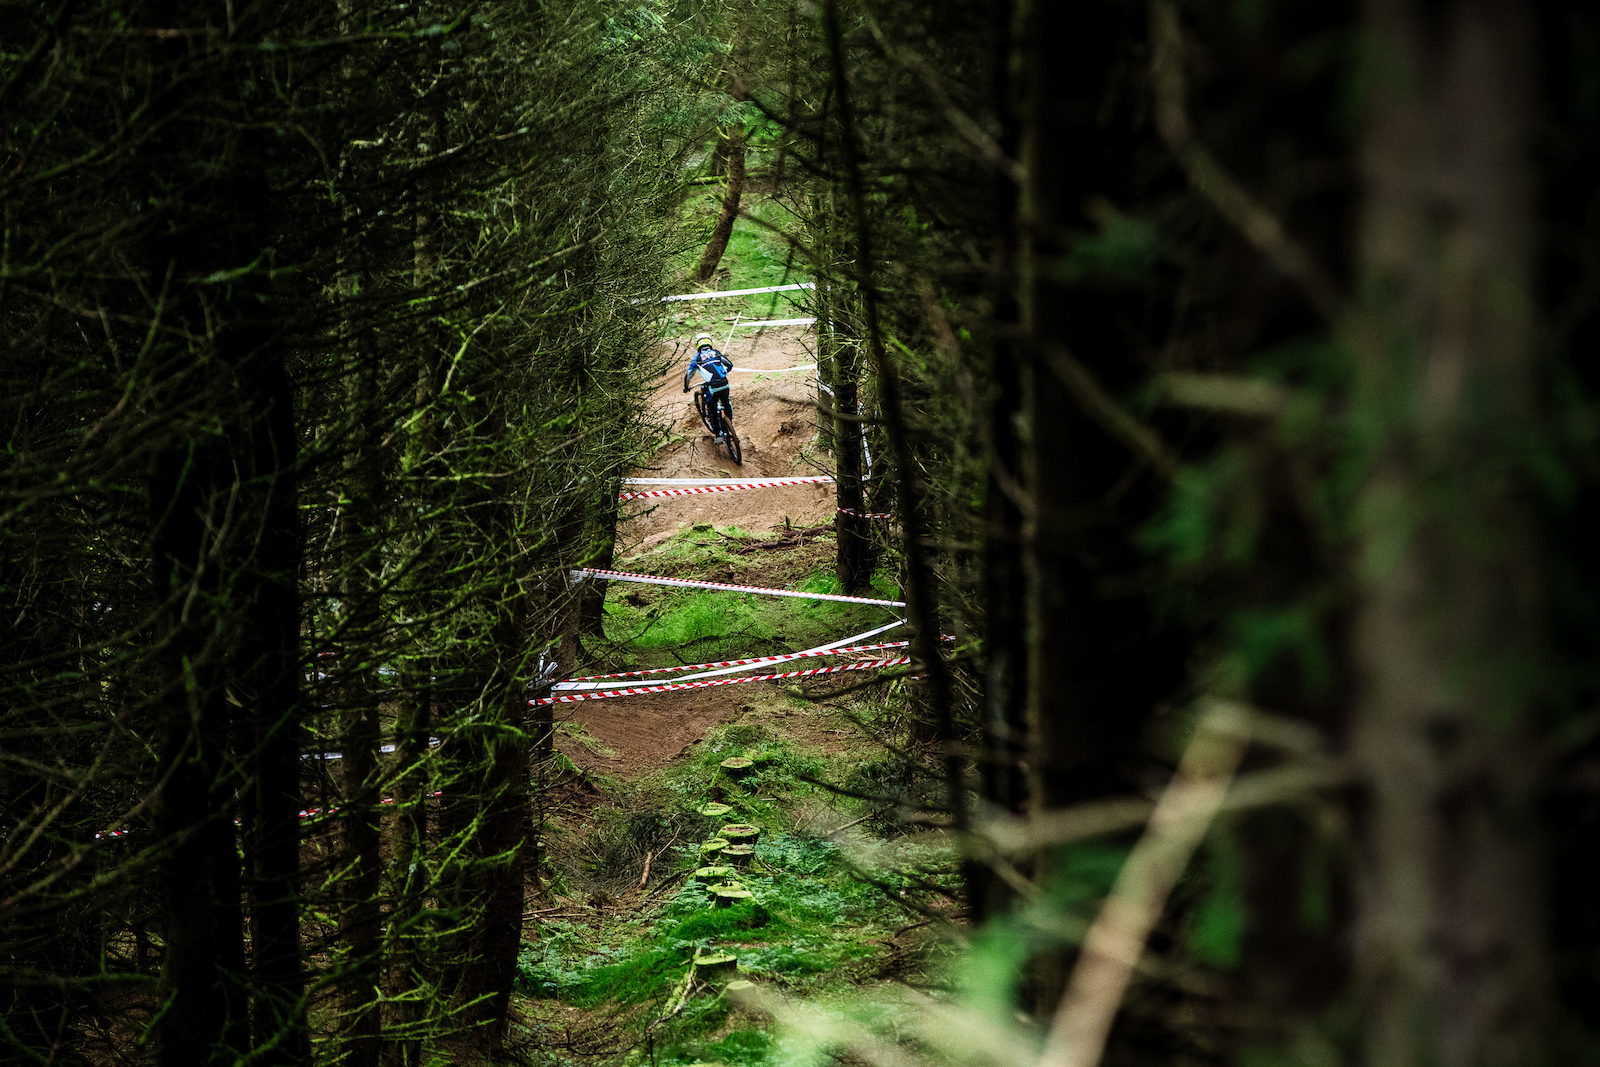 Danny Hart snaking his way through the trees of Revolution.